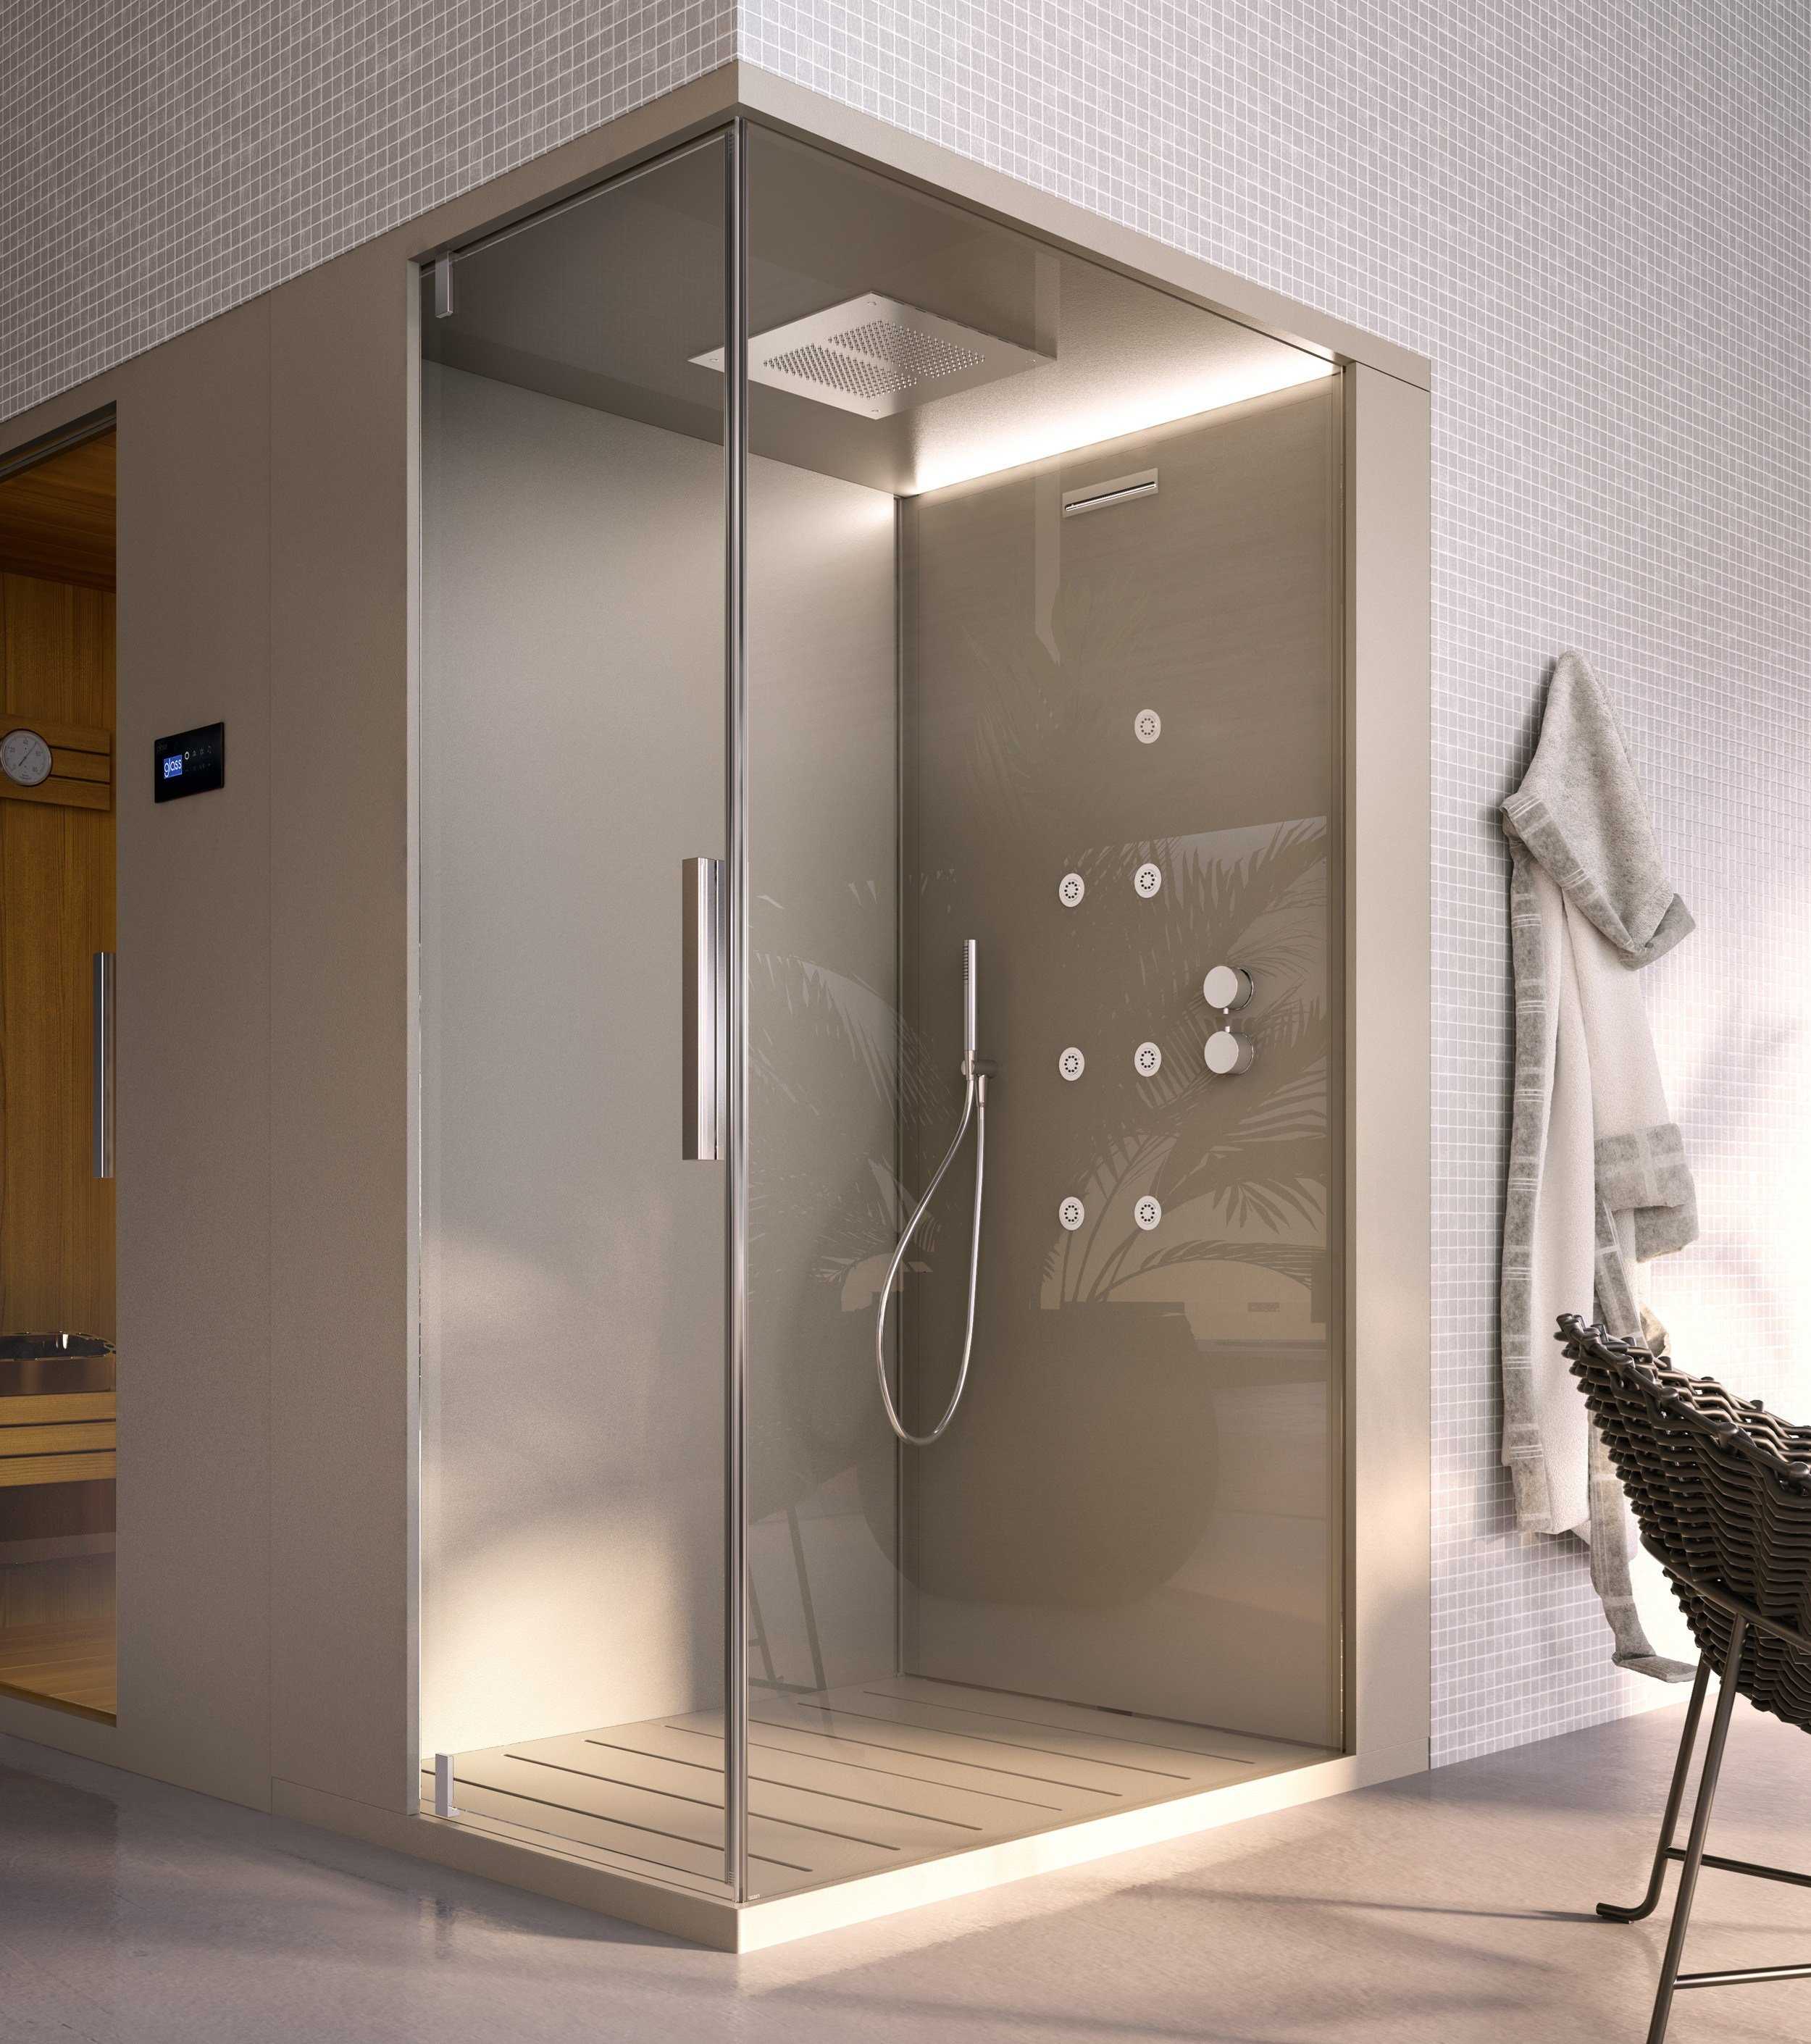 Sauna bagno turco pasodoble by glass 1989 - Bagno turco domestico ...